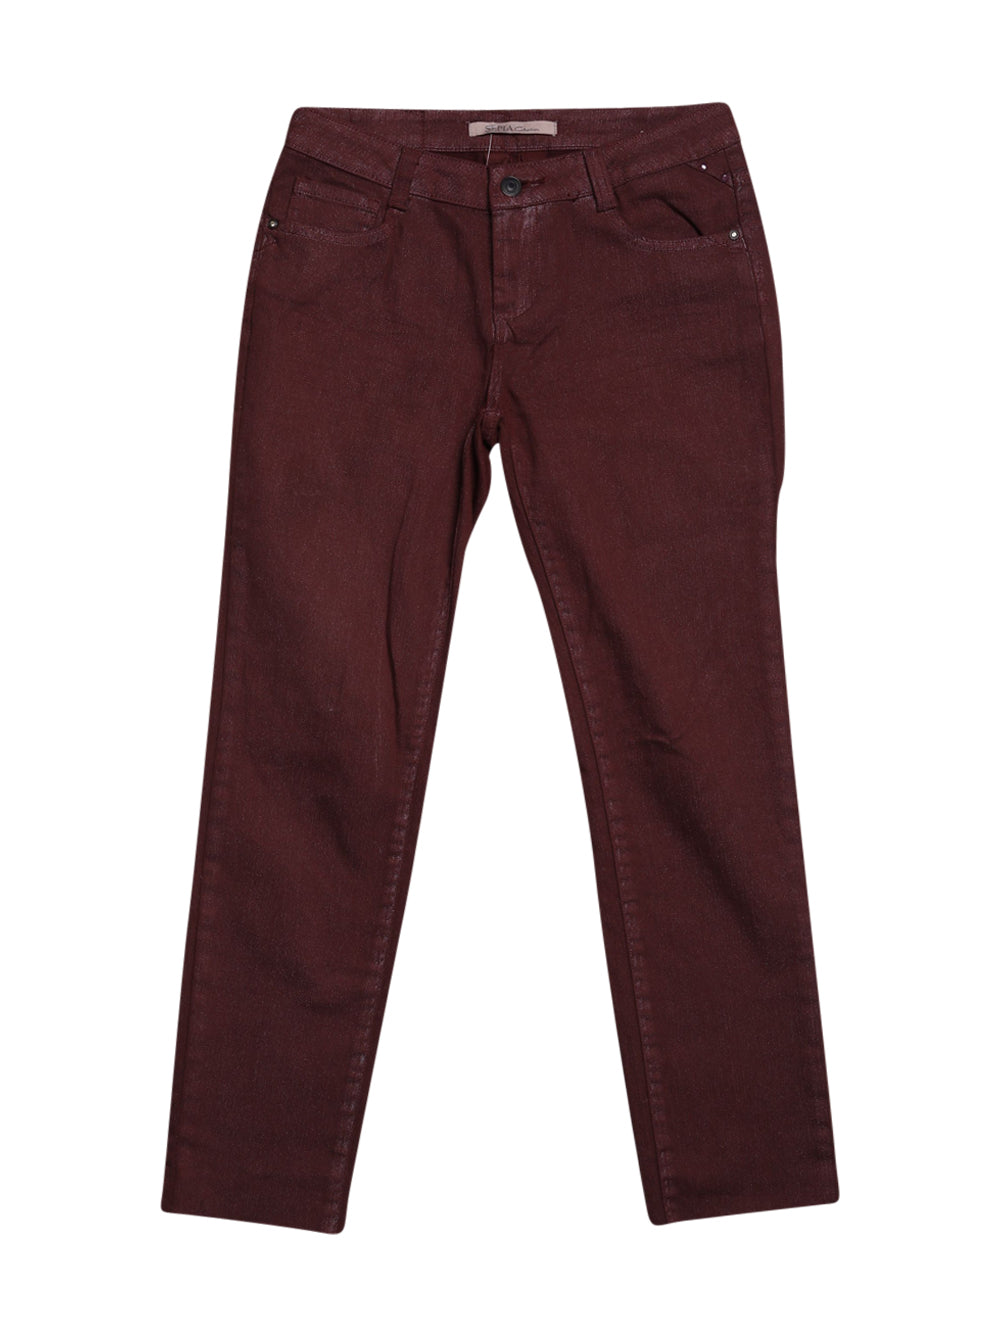 Front photo of Preloved Sepia Bordeaux Woman's trousers - size 4/XXS